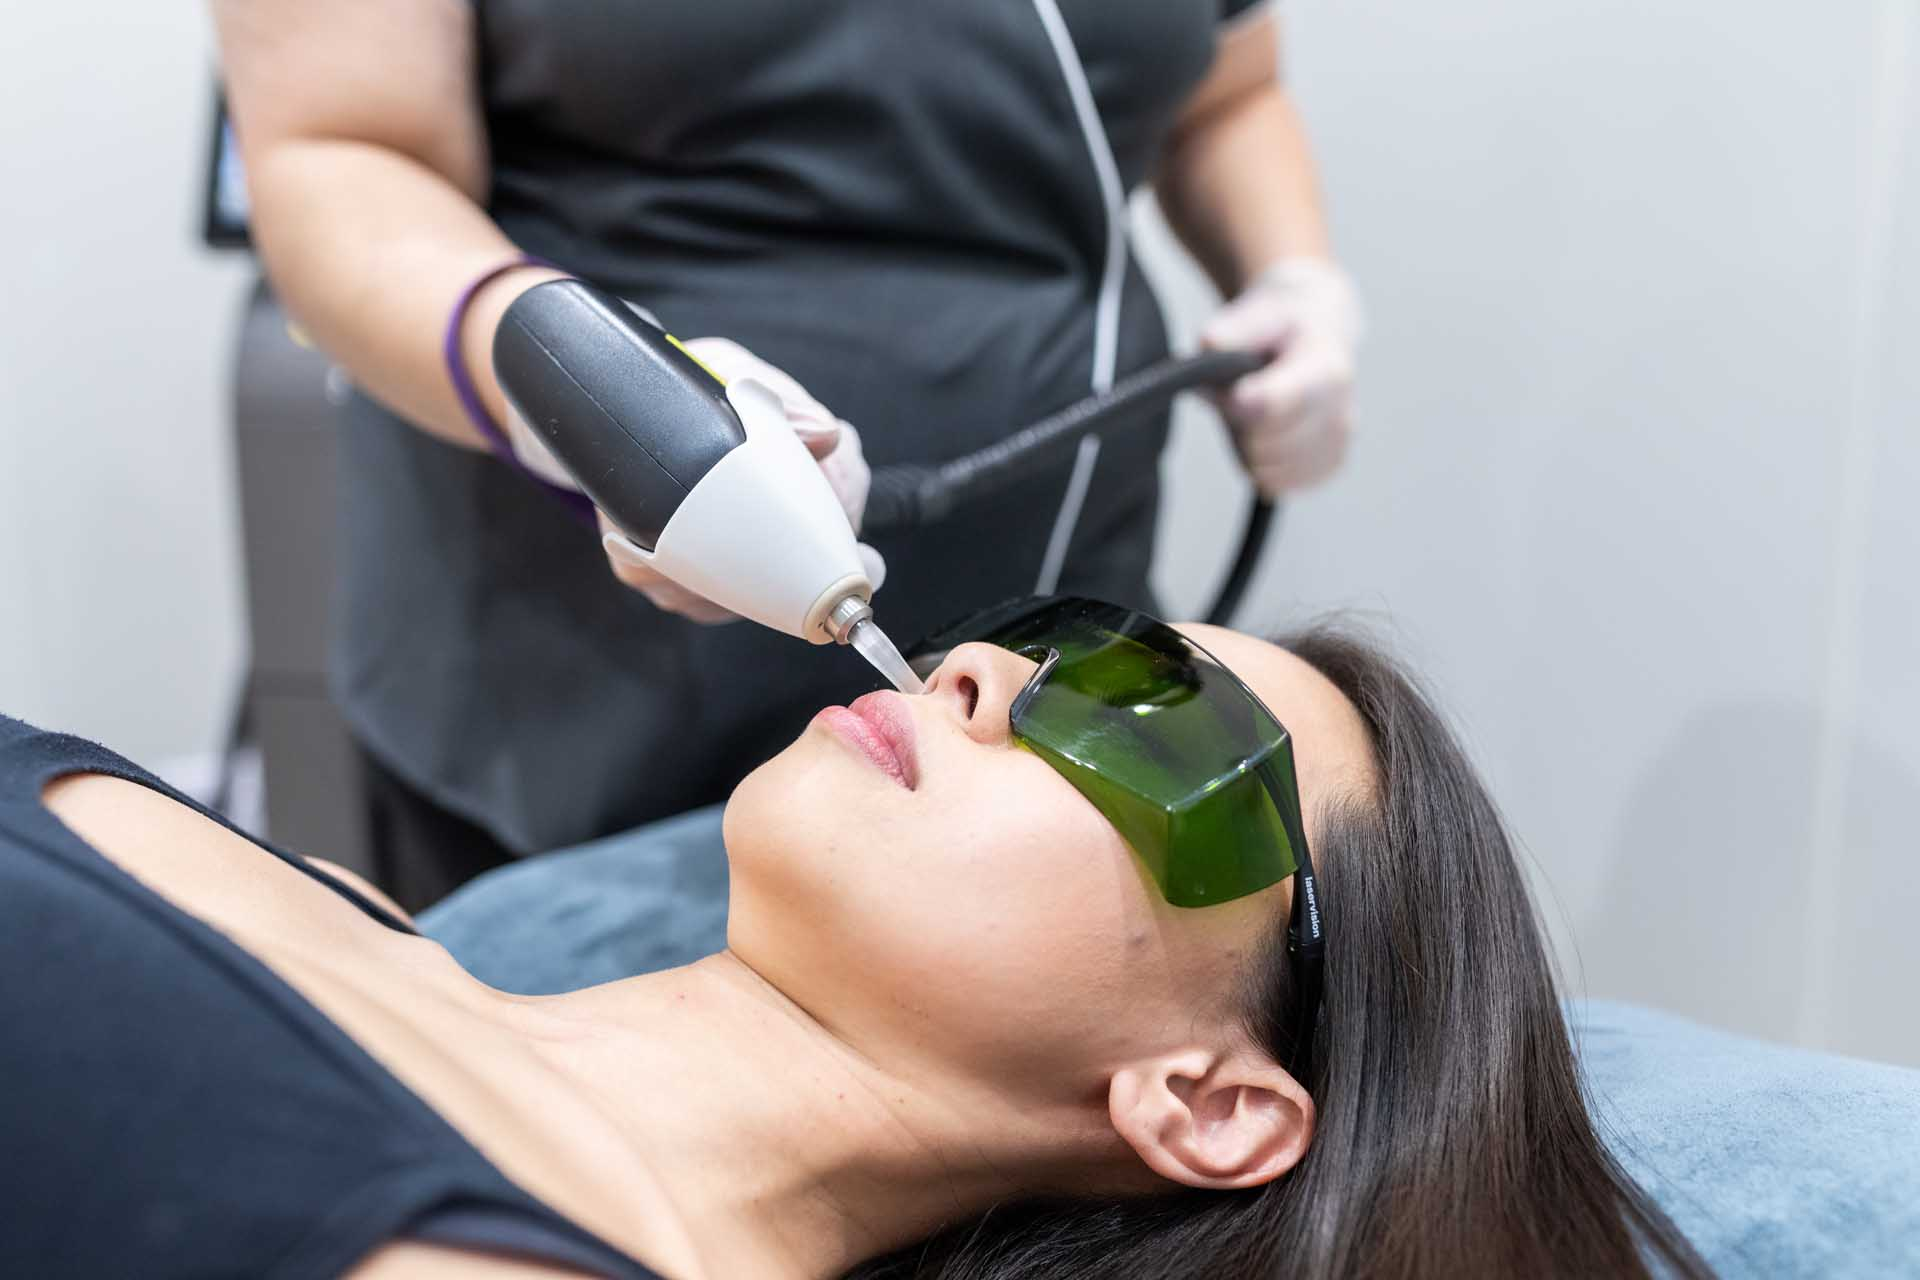 Laser hair removal session at Medspa beauty Clinic